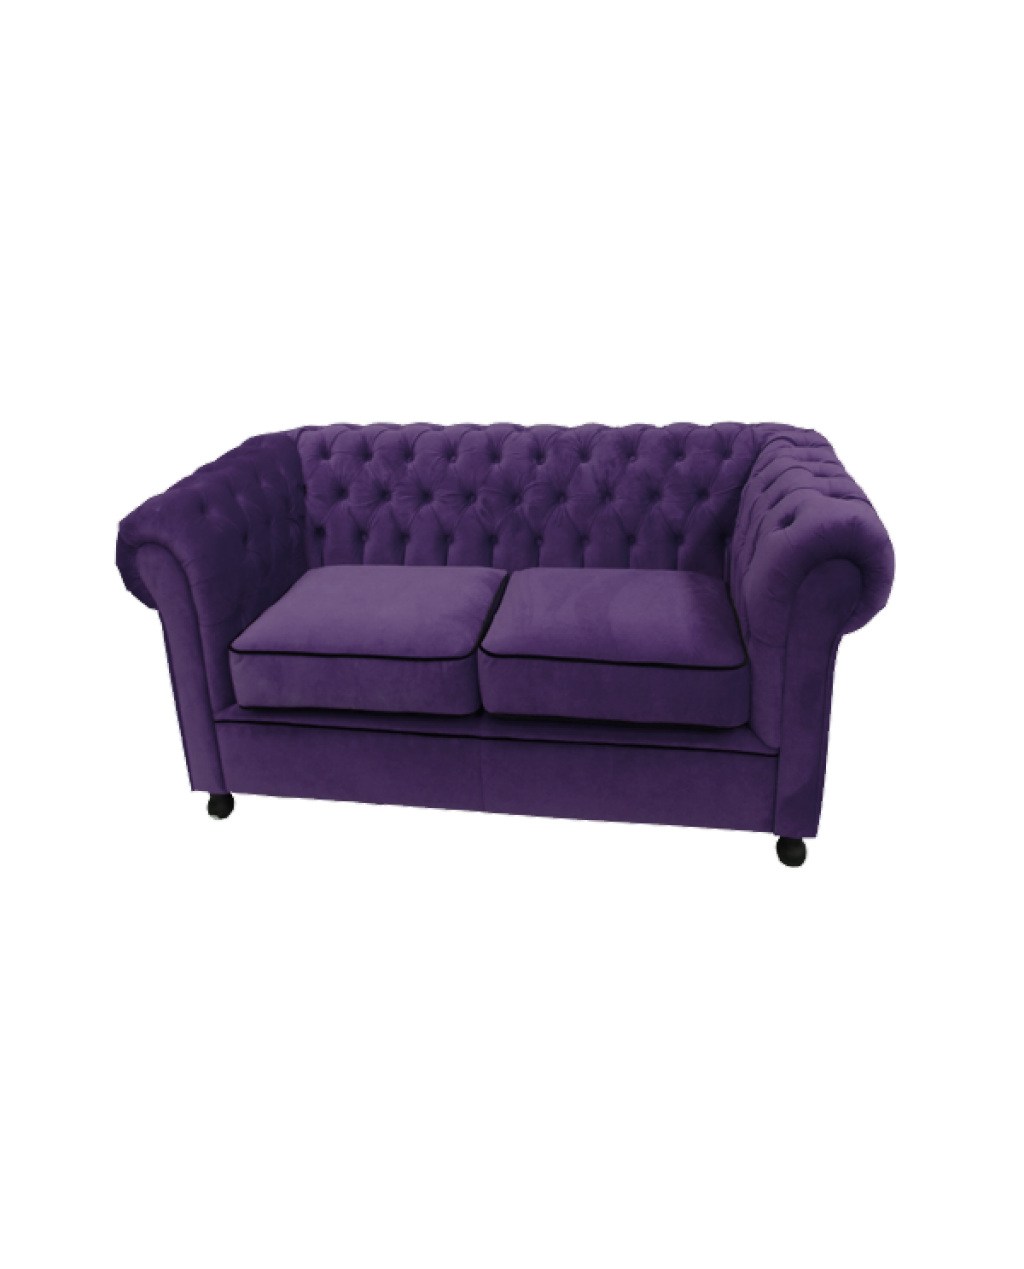 Warm Purple Sofa to Complete Your Living Room Decor: Purple Sofa | Plum Sectional Sofa | Purple Chesterfield Sofa